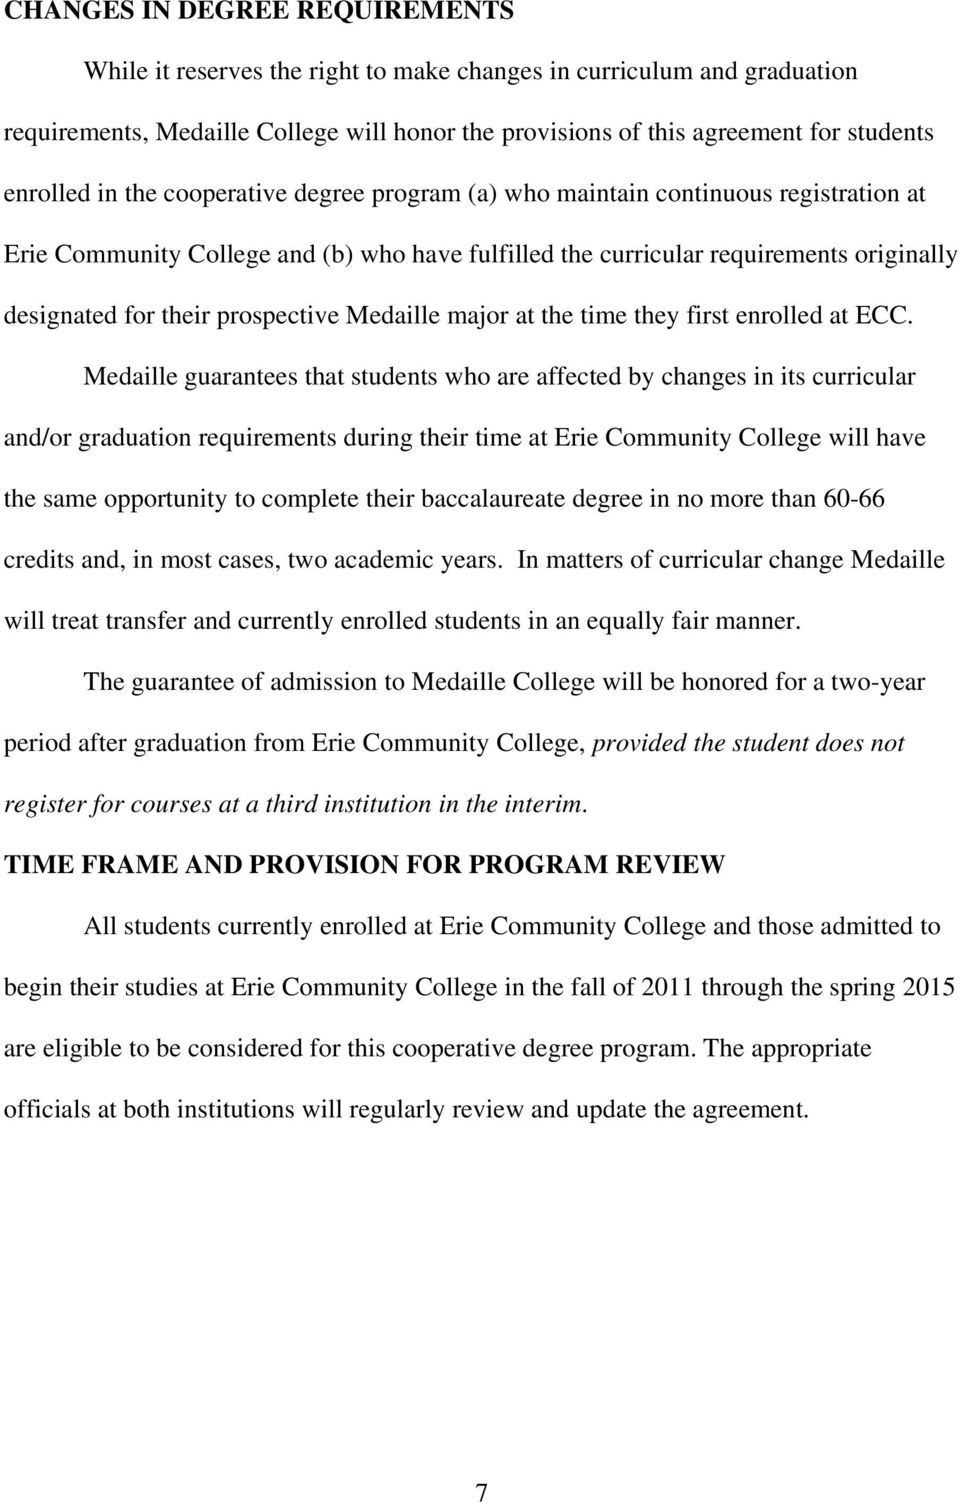 prospective Medaille major at the time they first enrolled at ECC.